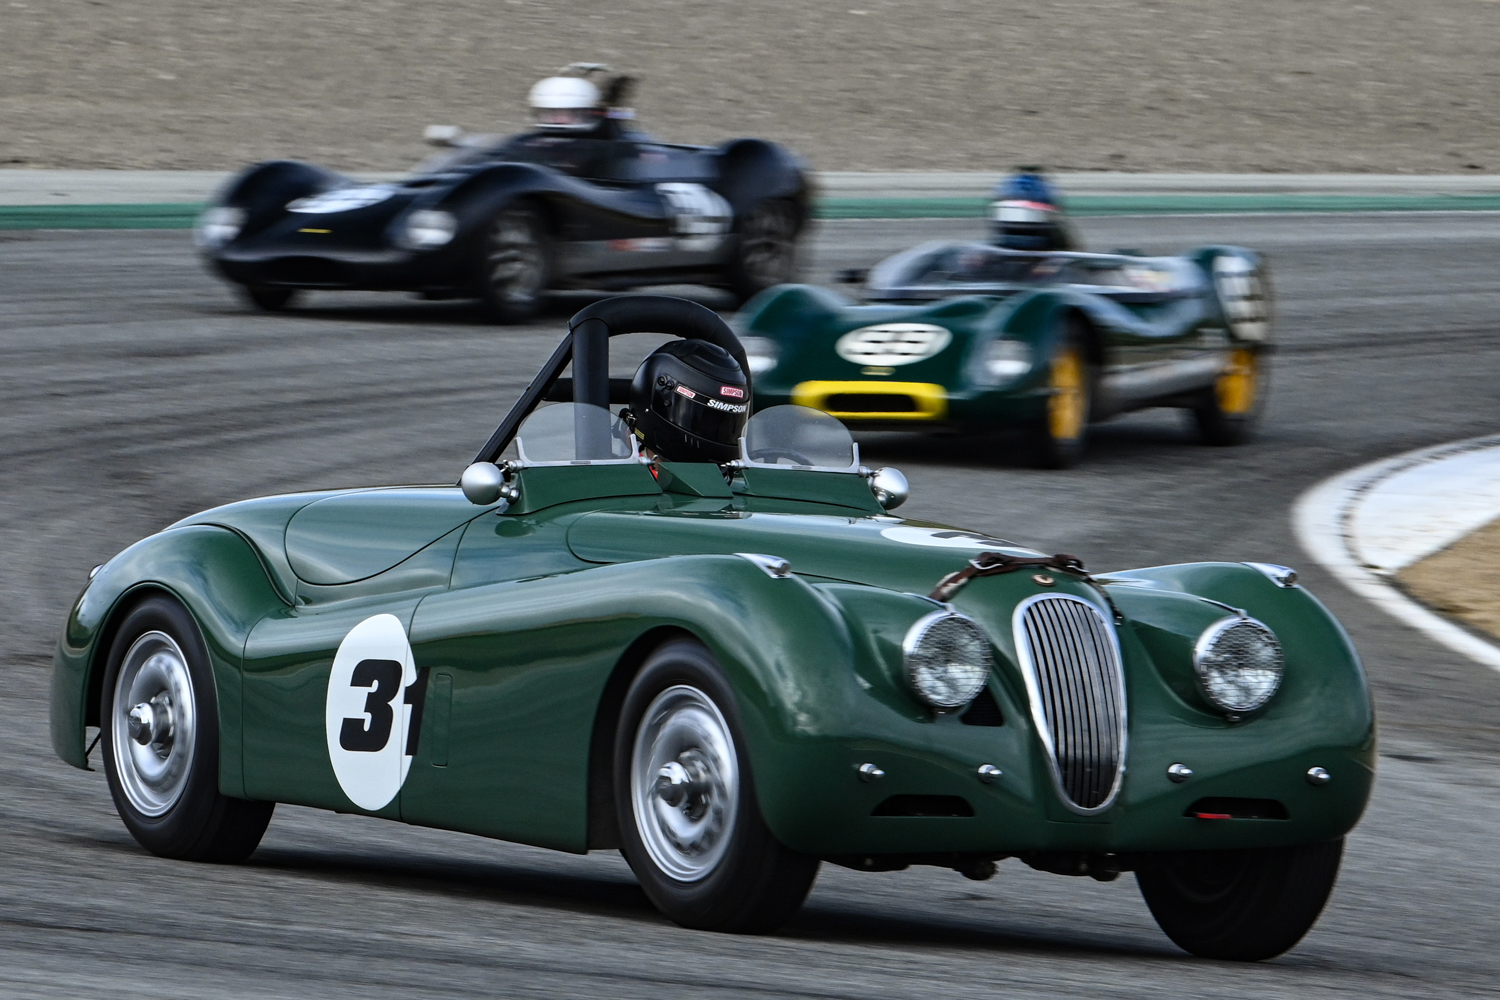 Bill Rooklidge - 1952 Jaguar XK120 DENNIS GRAY